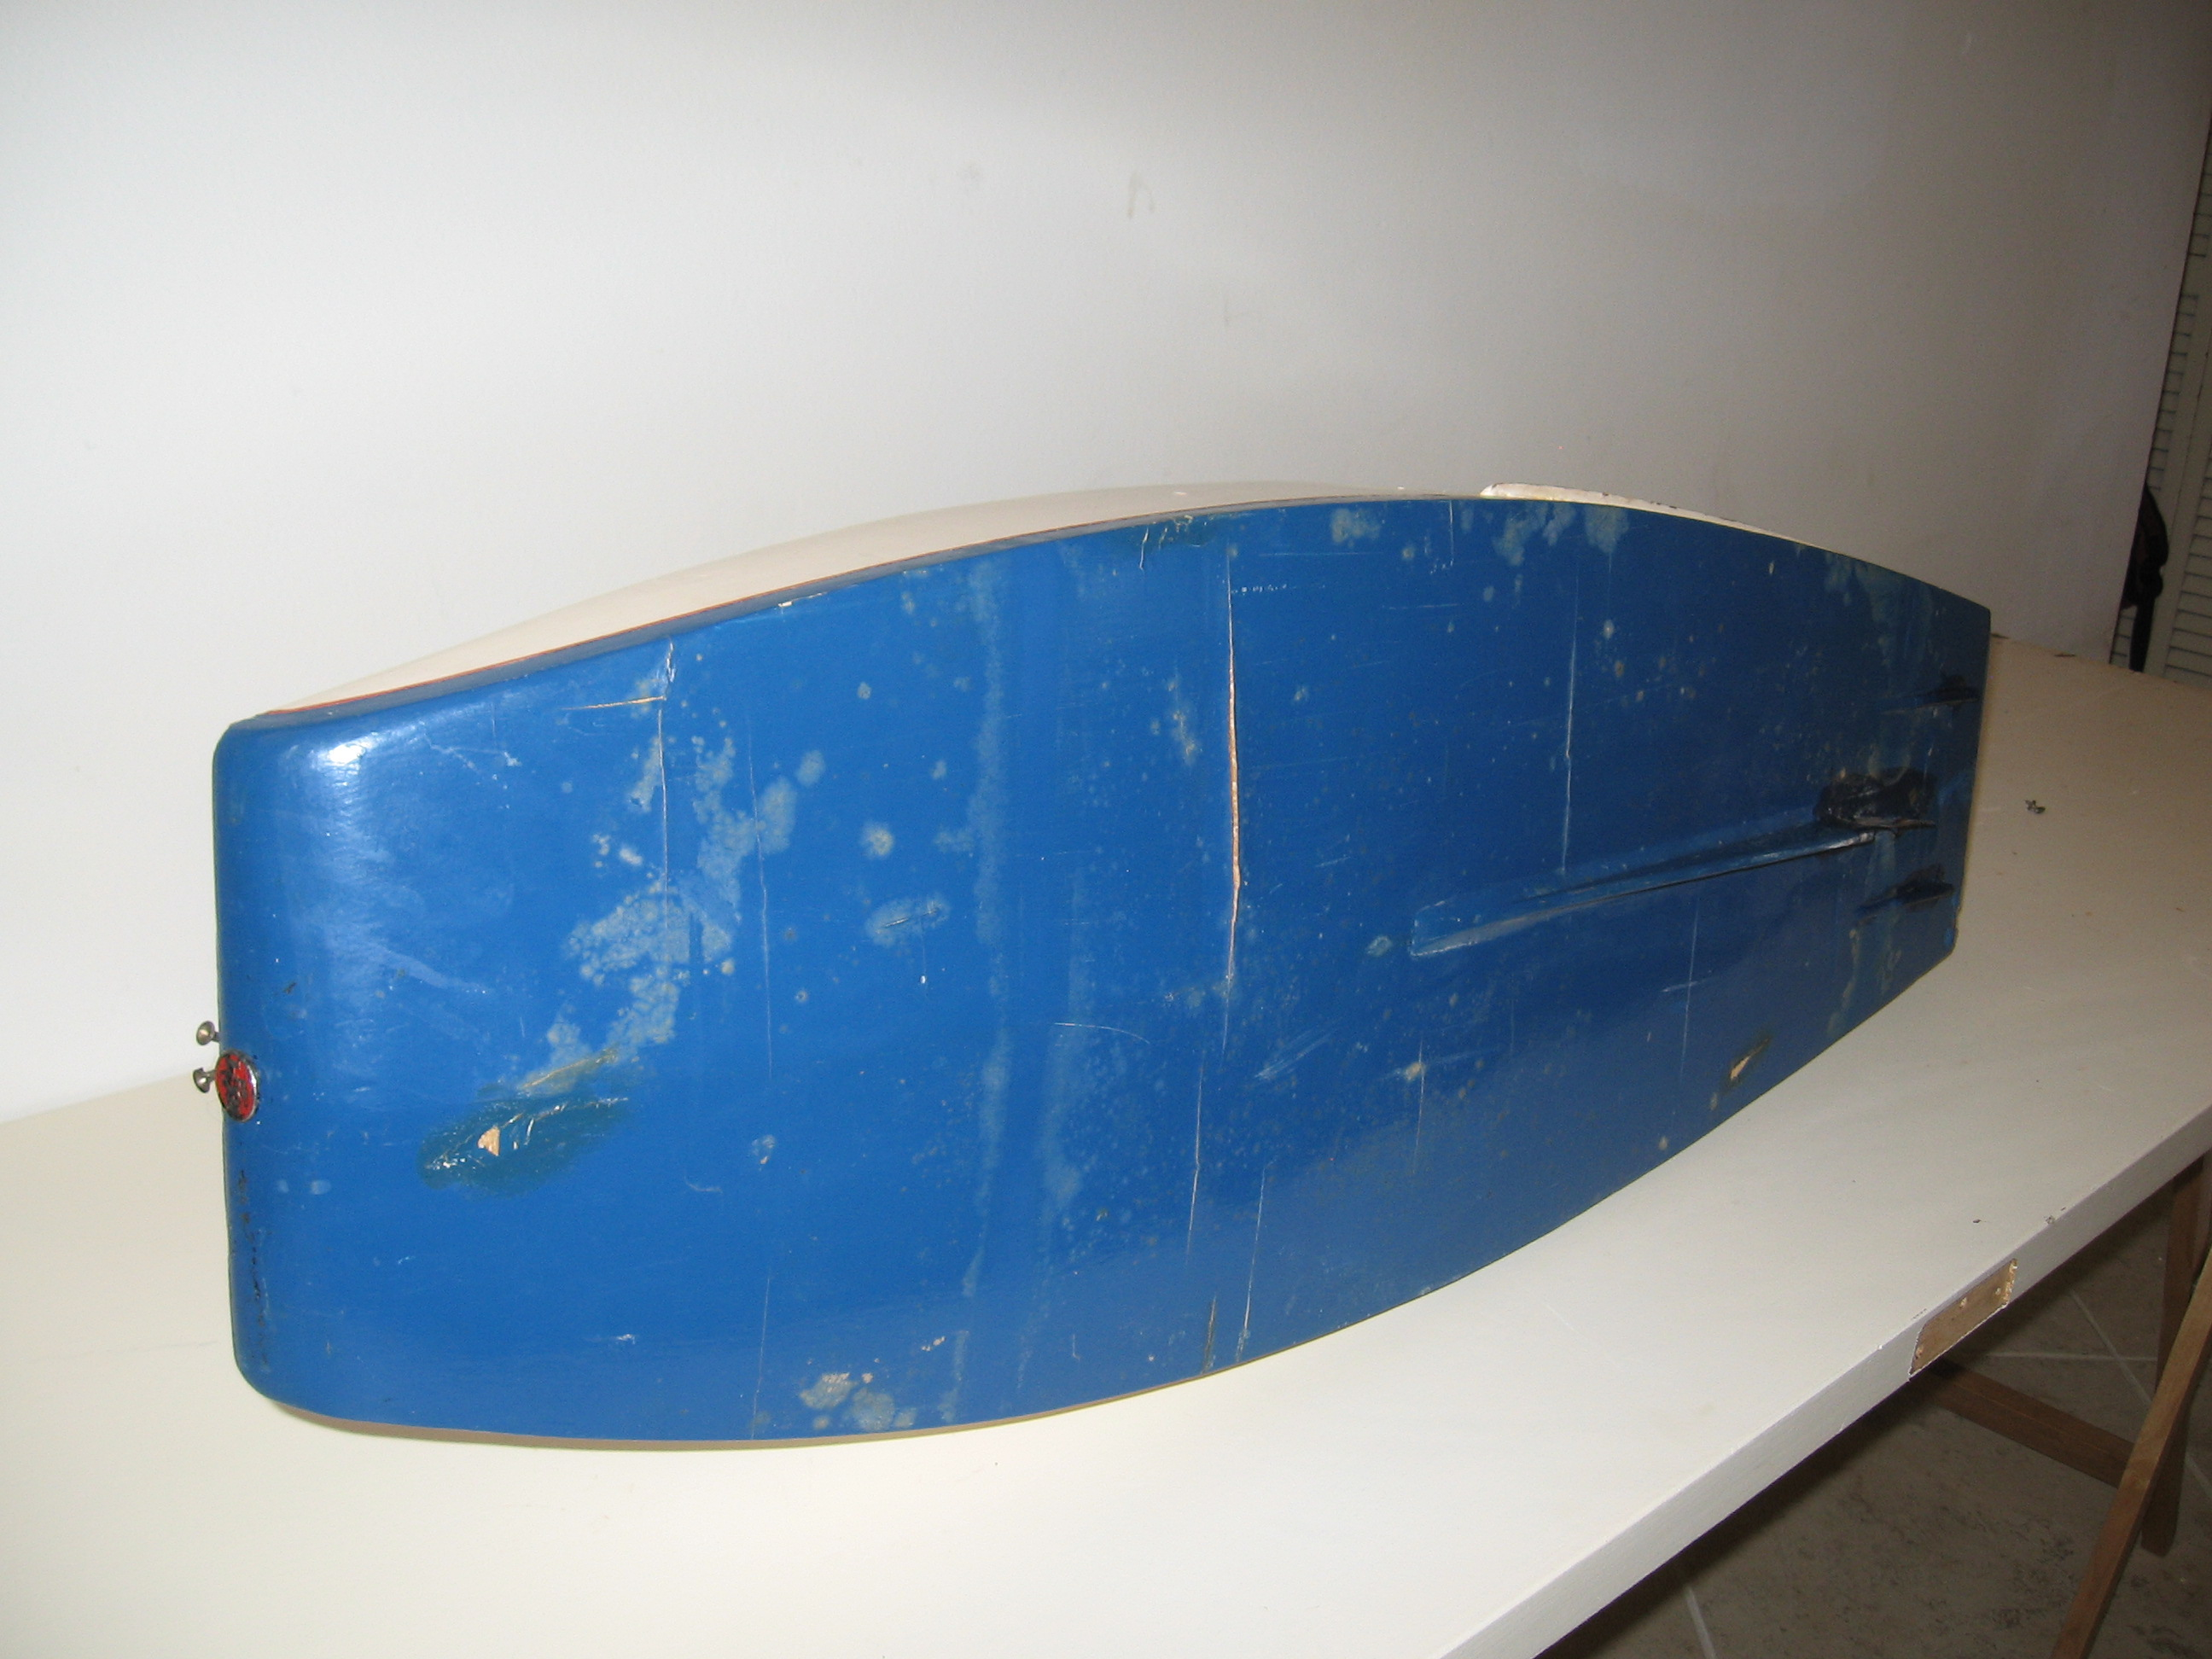 Click image for larger version  Name:RC boats 011.JPG Views:44 Size:923.1 KB ID:1977808